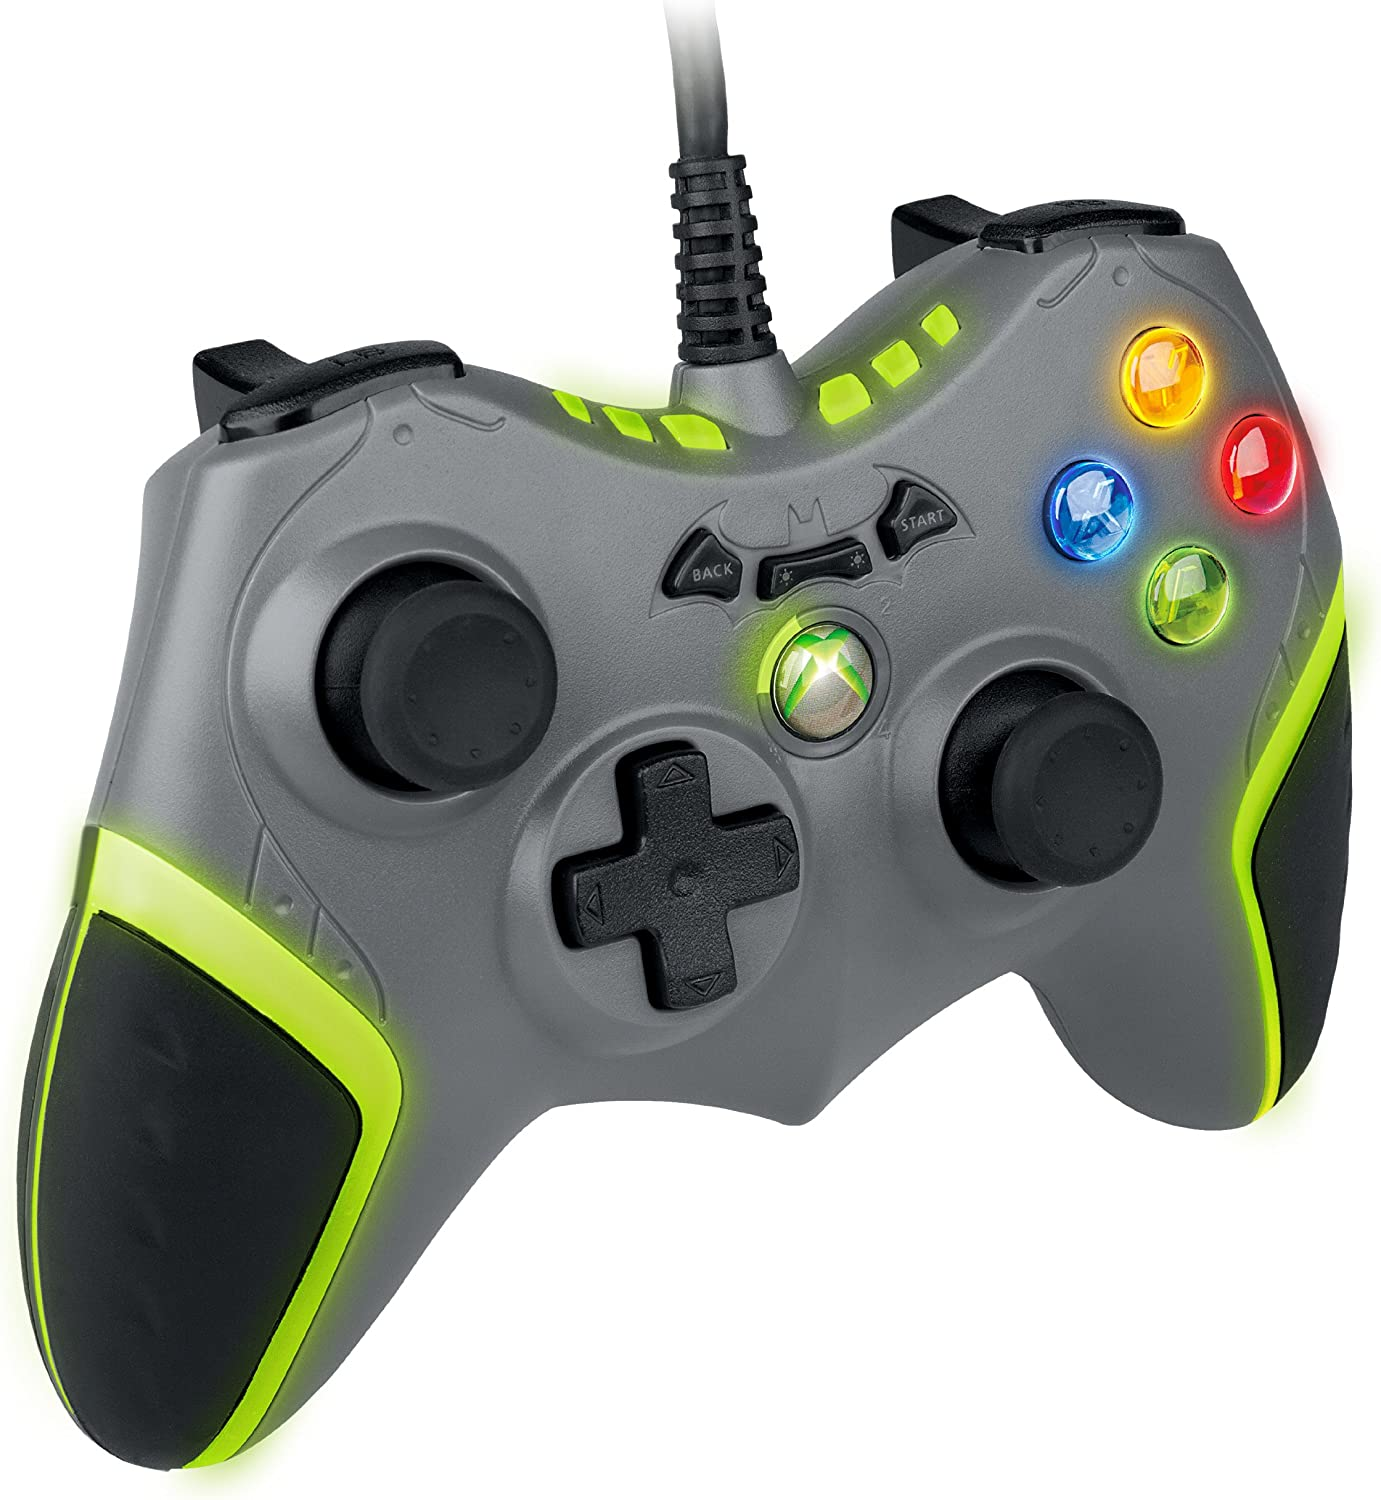 Amazon.com: Batarang Wired Controller for Xbox 360: Video Games